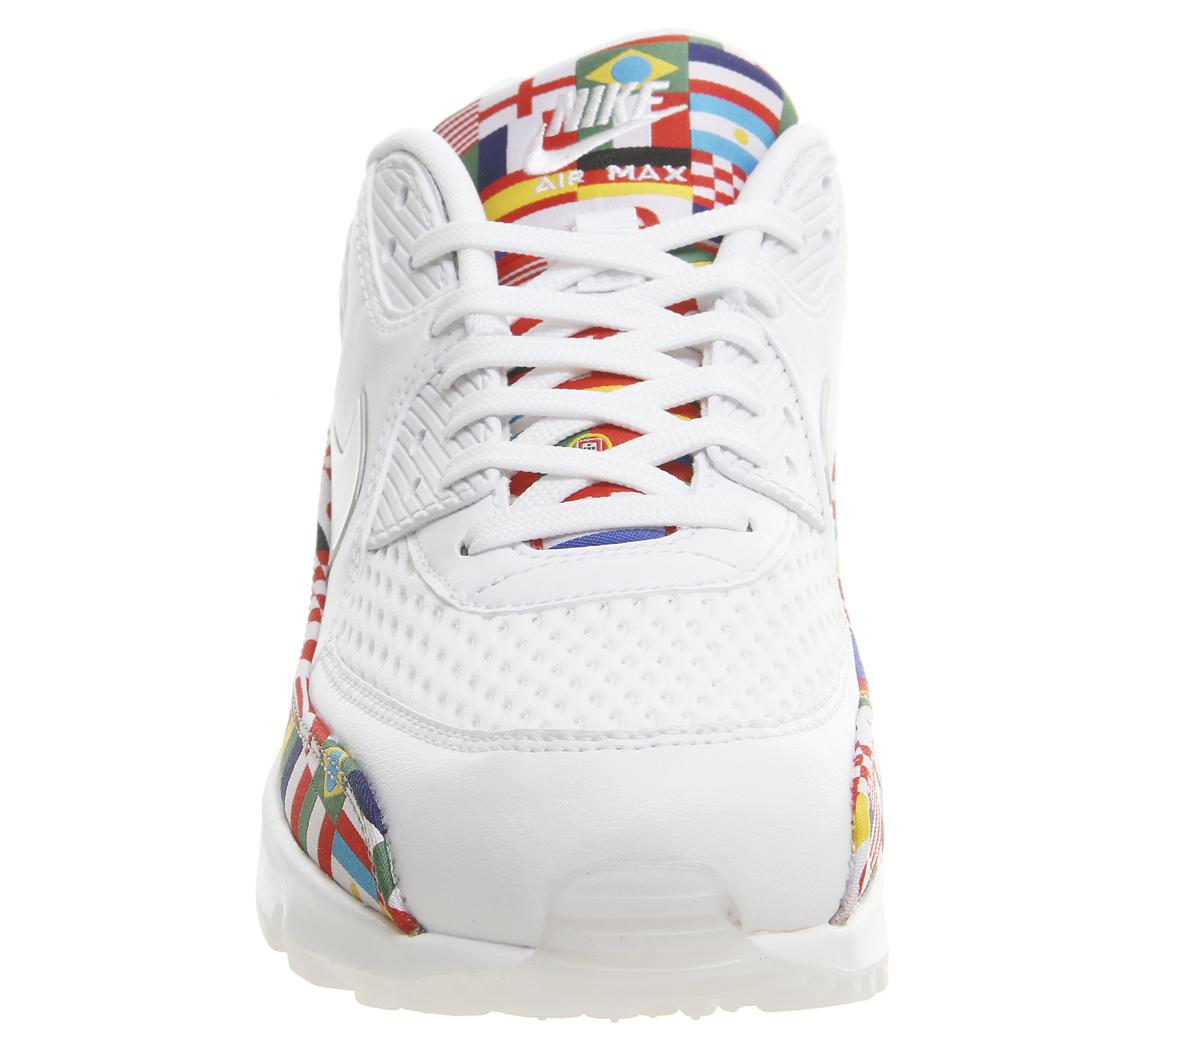 f20f2dac ... hot gallery. previously sold at offspring mens air max 90 sneakers  8463c b5e98